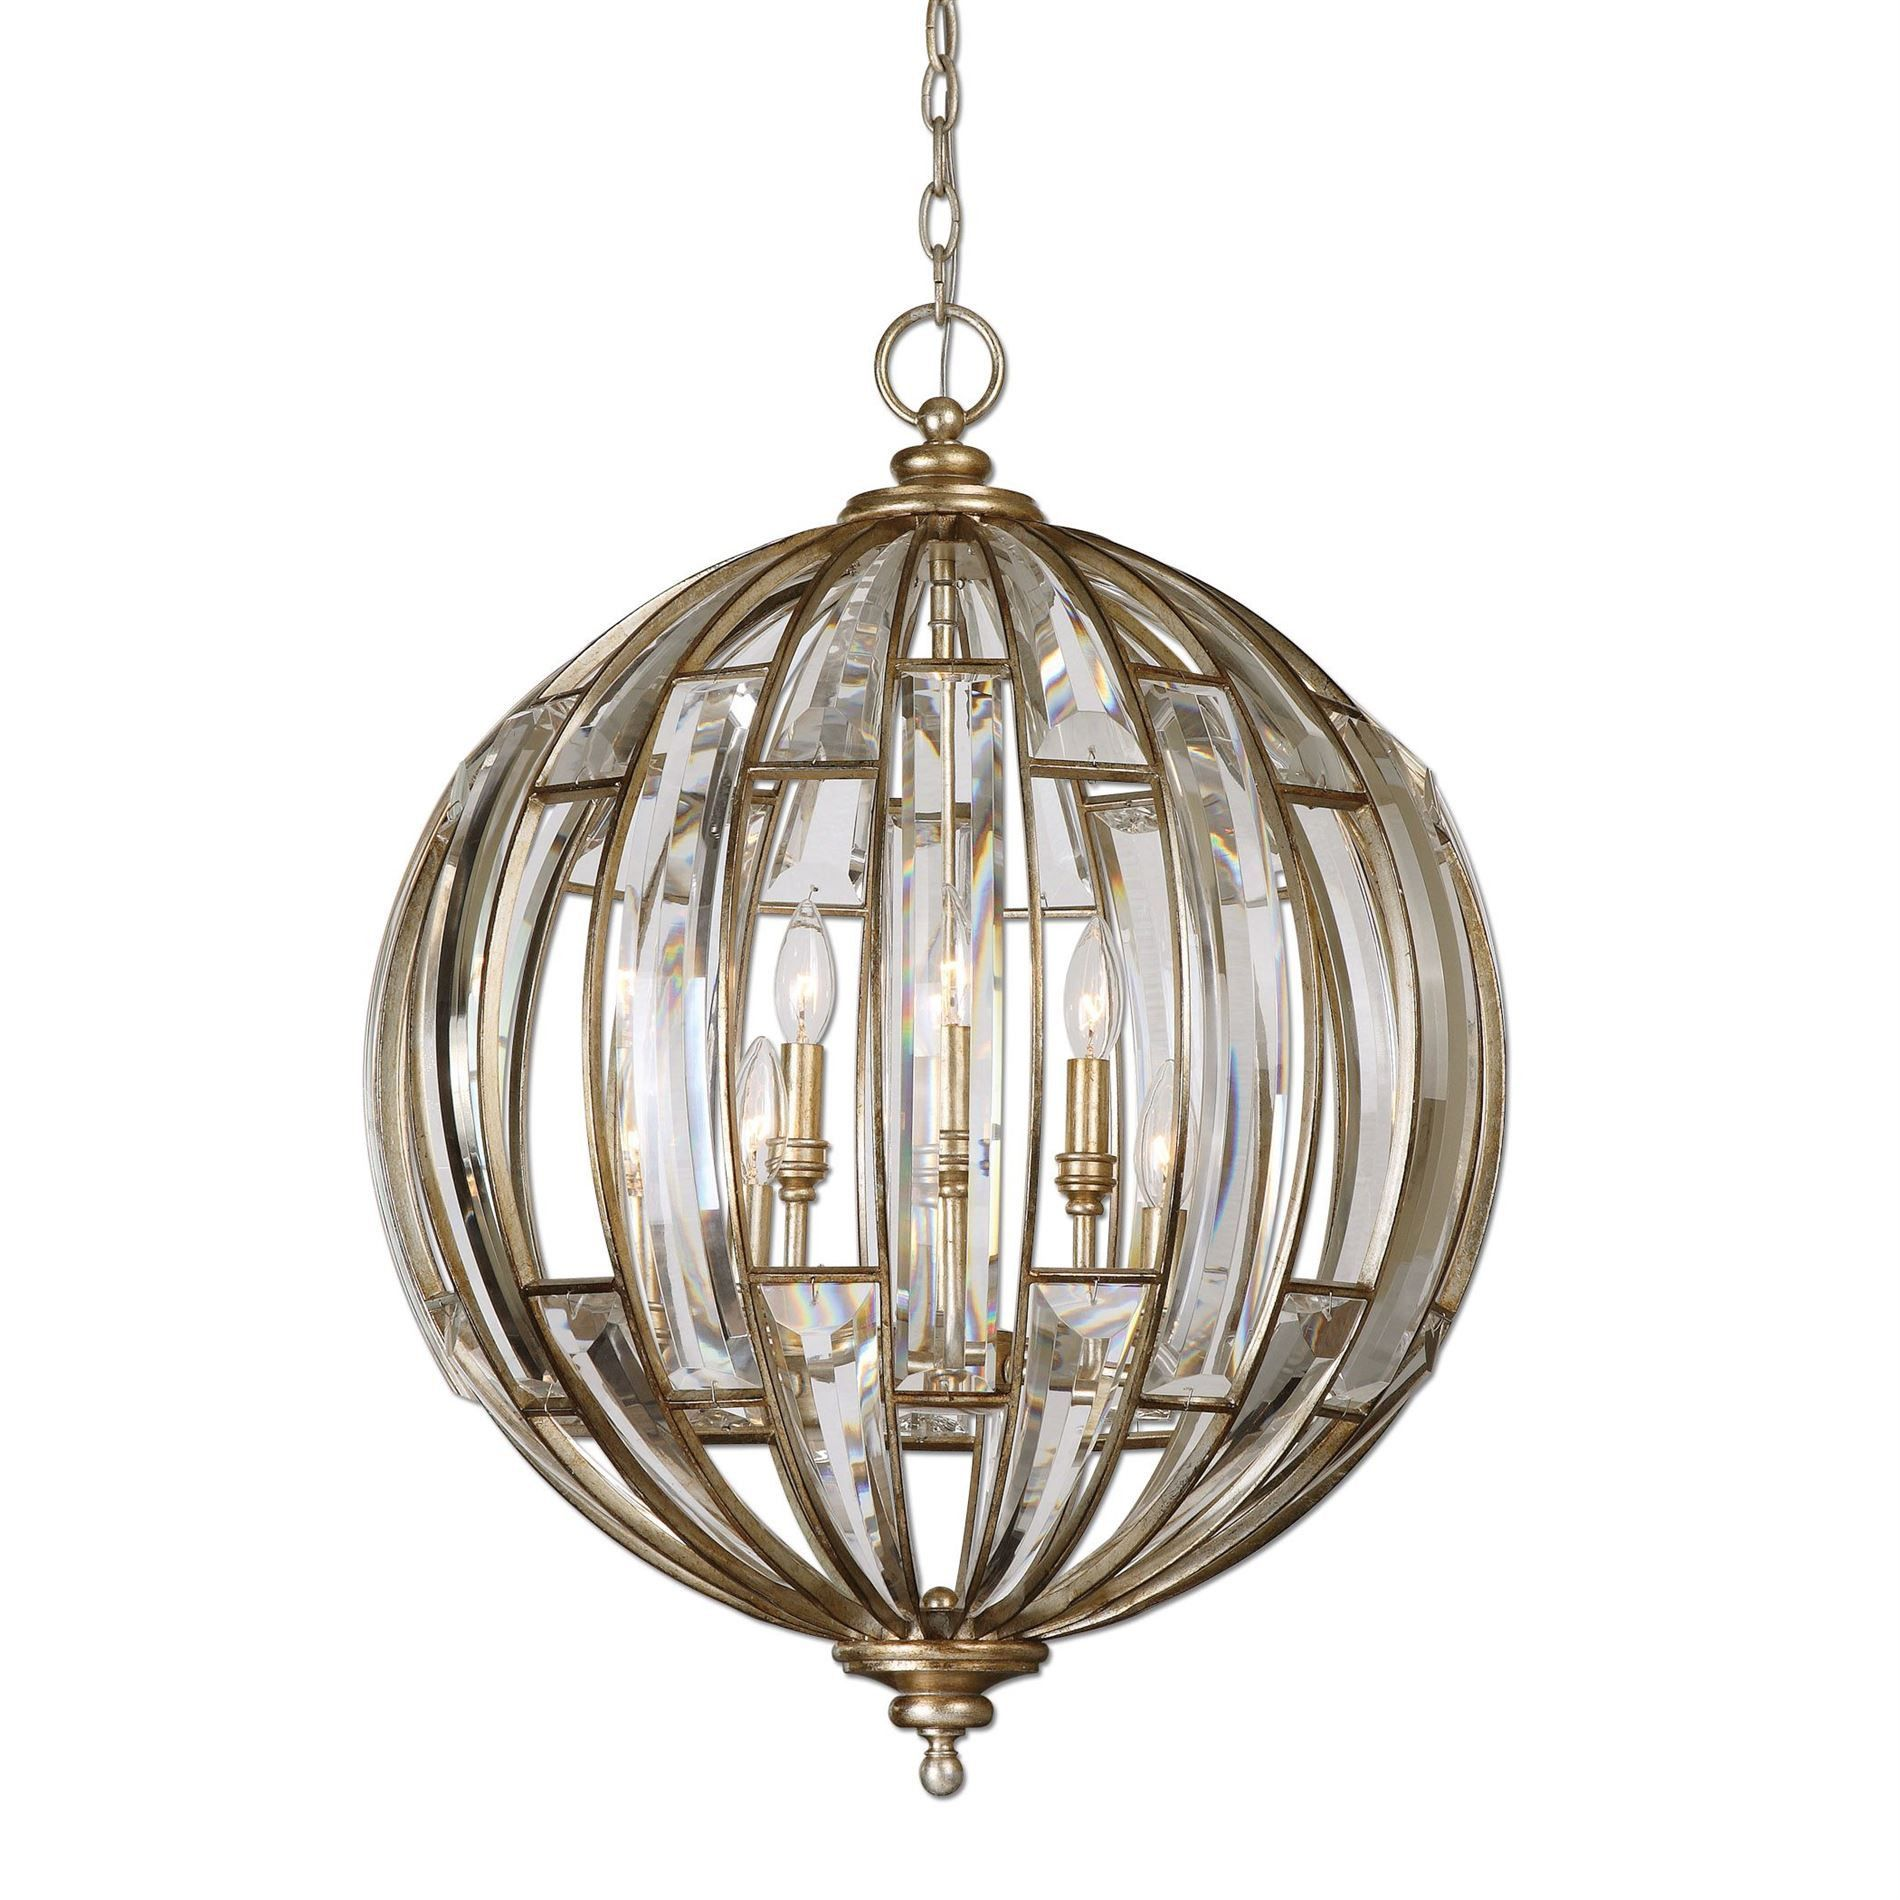 Vicentina 6 light sphere pendant by uttermost pendants and lights vicentina 6 light sphere pendant by uttermost mozeypictures Image collections